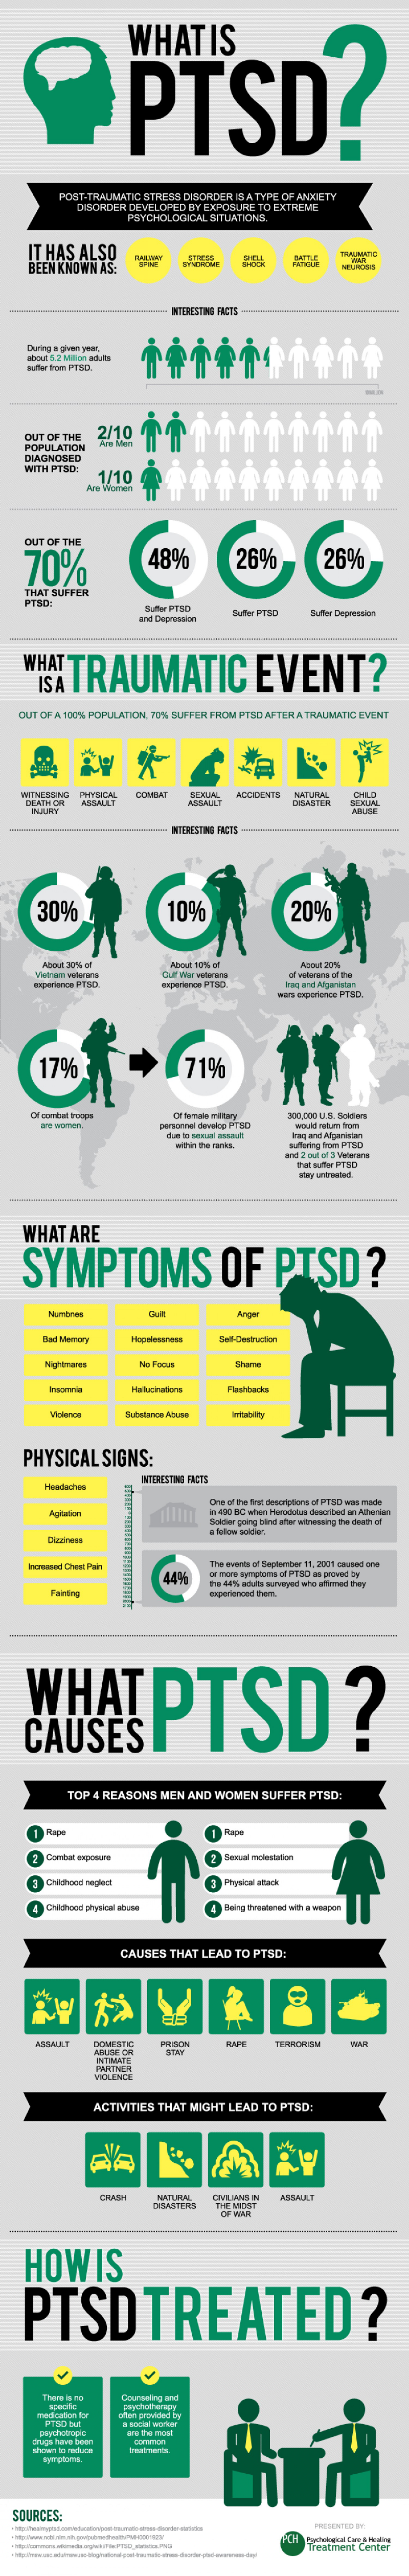 PTSD Facts and Stats